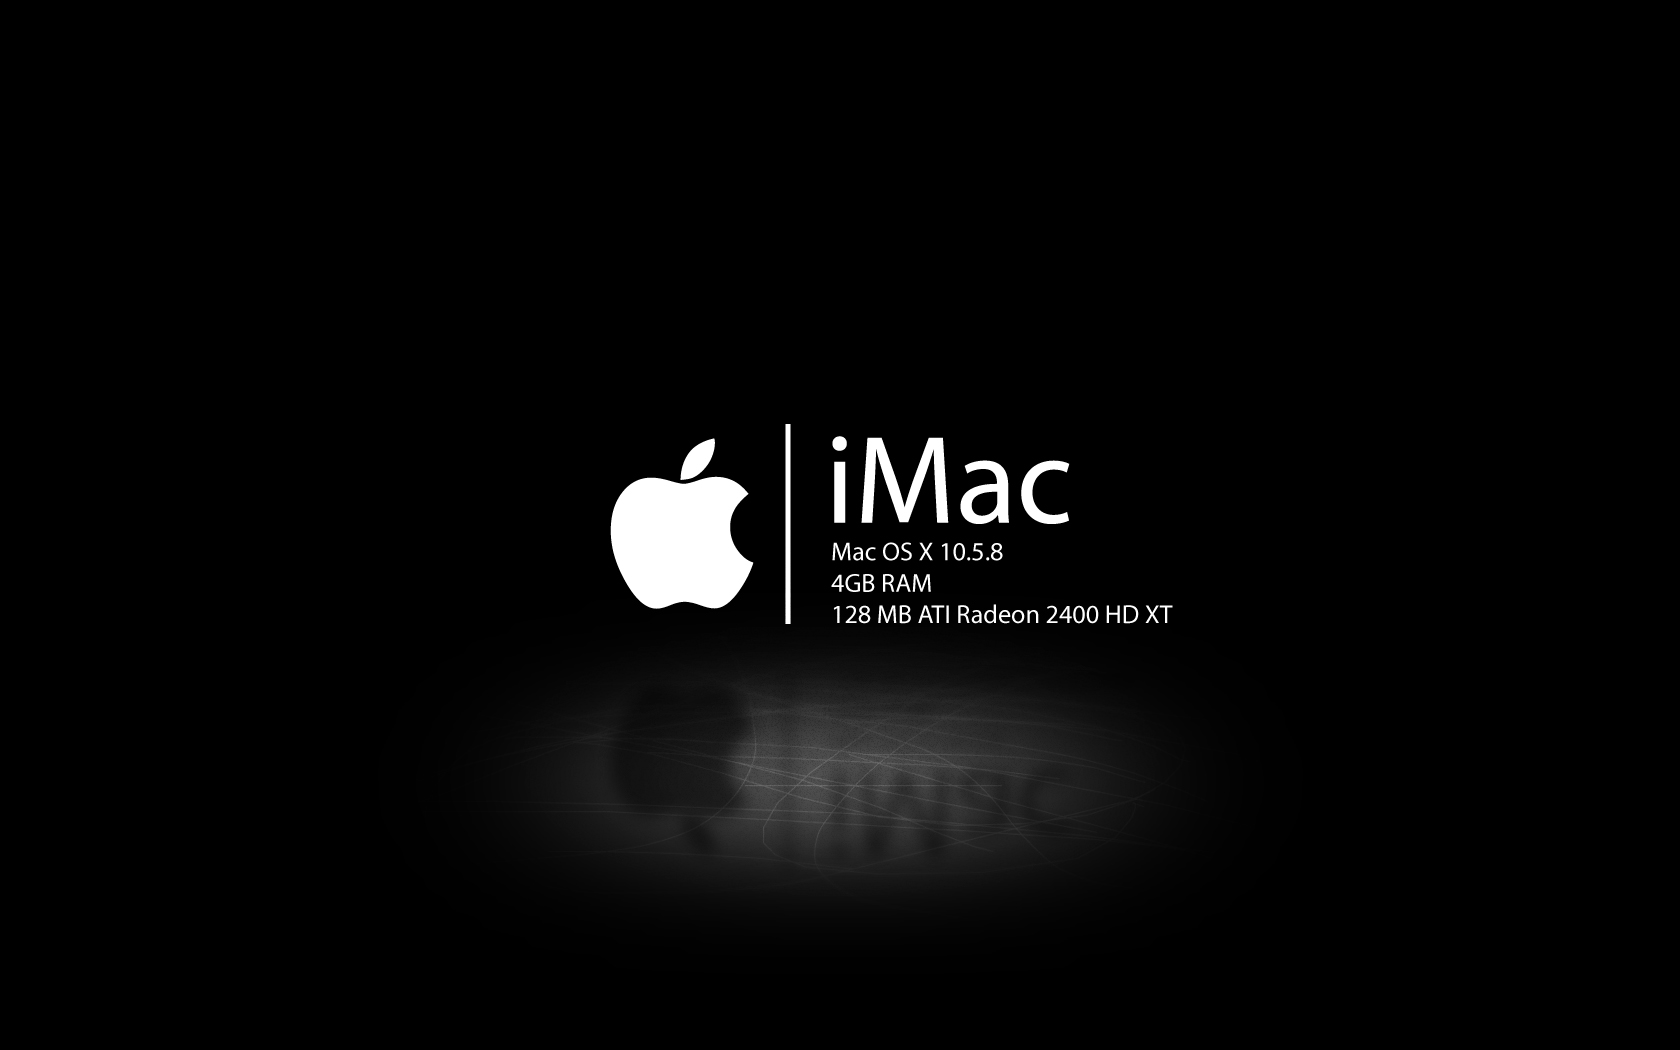 Cool iMac Wallpaper